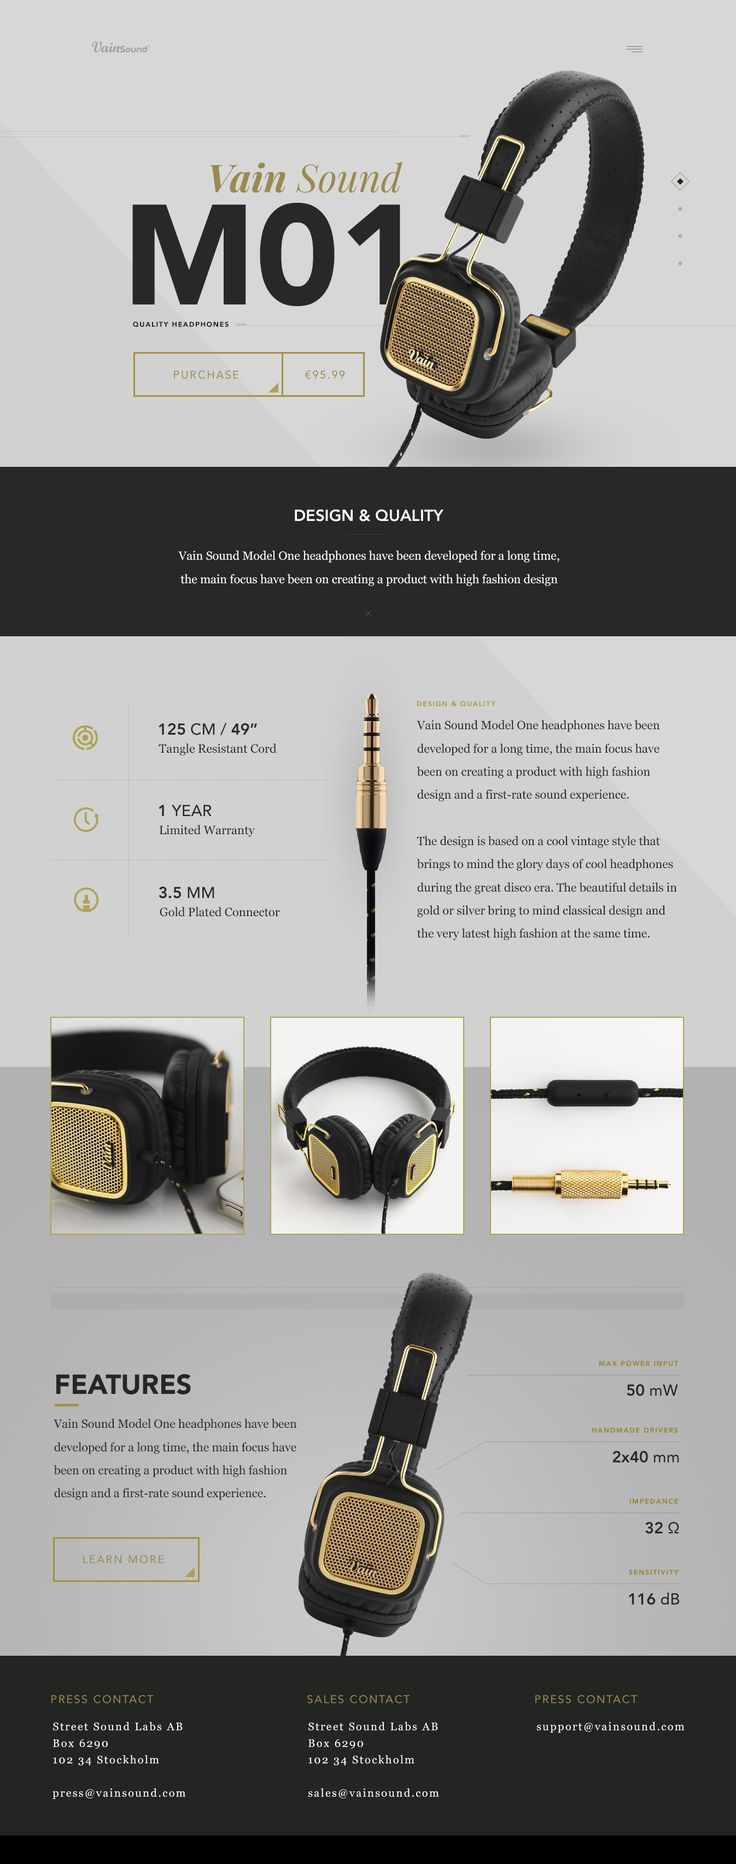 Vain Sound Model One Product Page https://dribbble.com/shots/1626731-Vain-Sound-Model-One-Product-Page